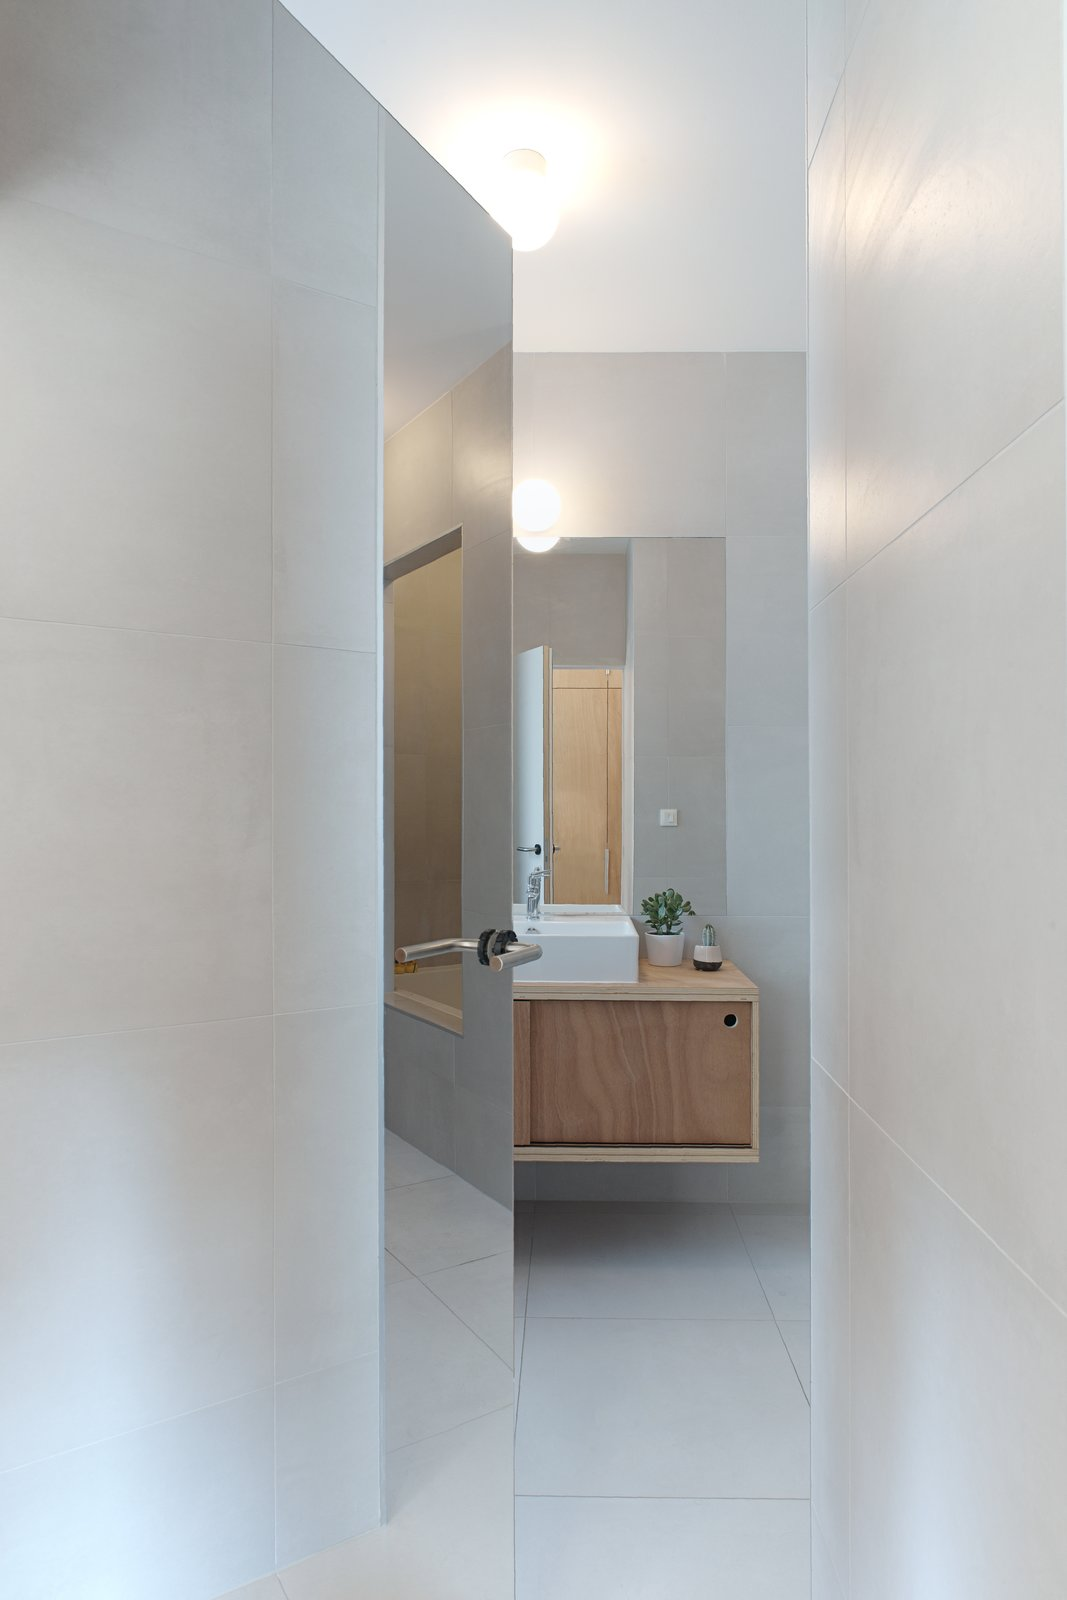 Bath Room, Ceiling Lighting, Wall Lighting, Ceramic Tile Floor, and Ceramic Tile Wall The mirrored door opens on the bathroom  Corner Apartment in Strasbourg, France by Dratler Duthoit